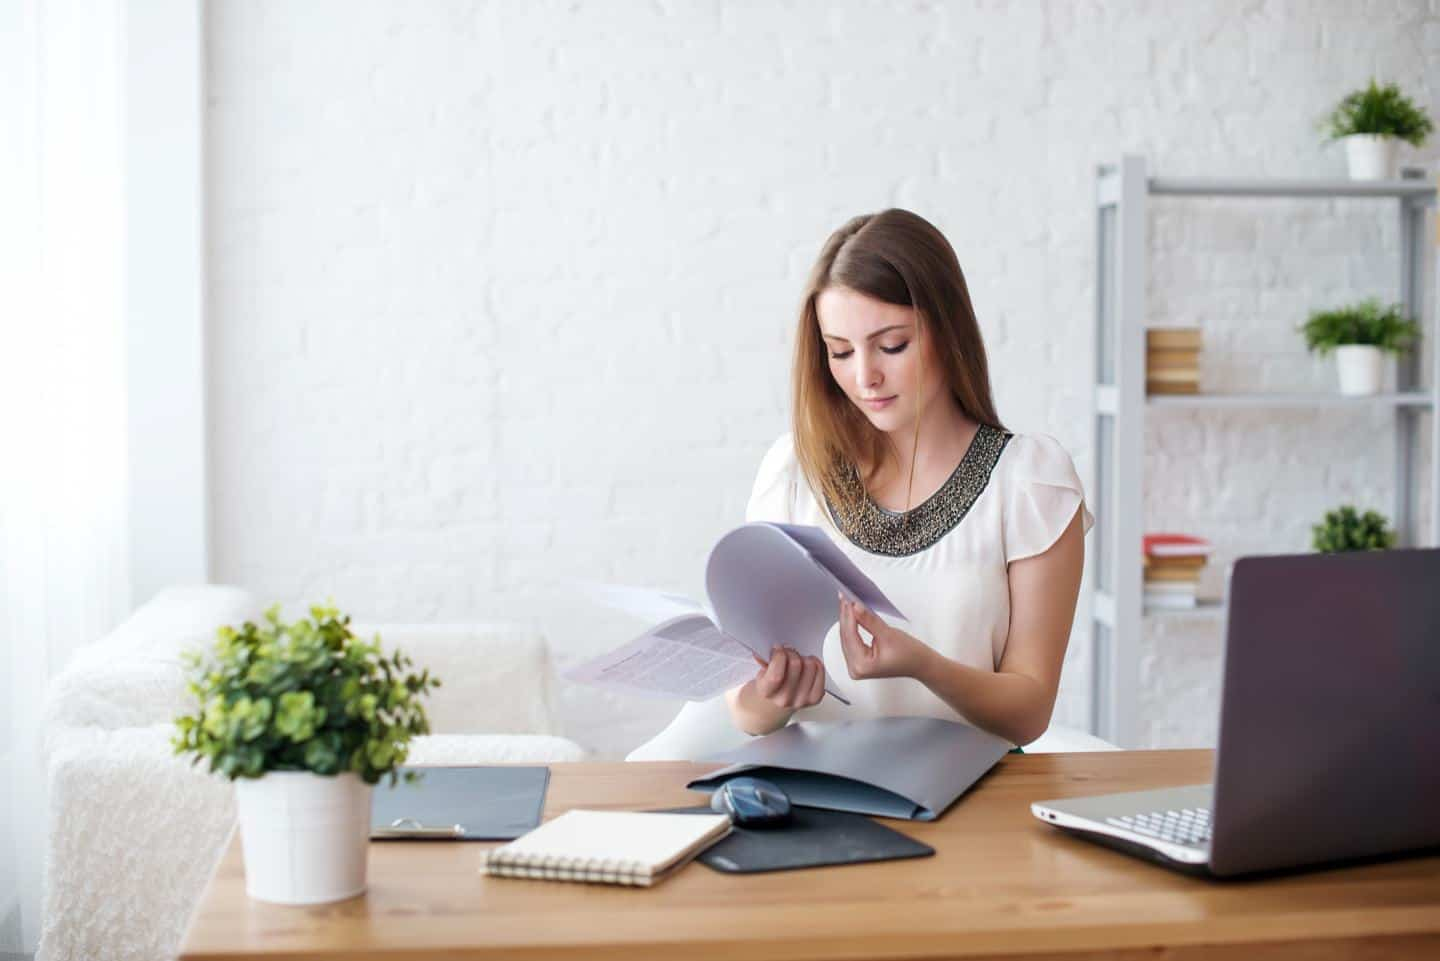 woman flipping through papers at desk